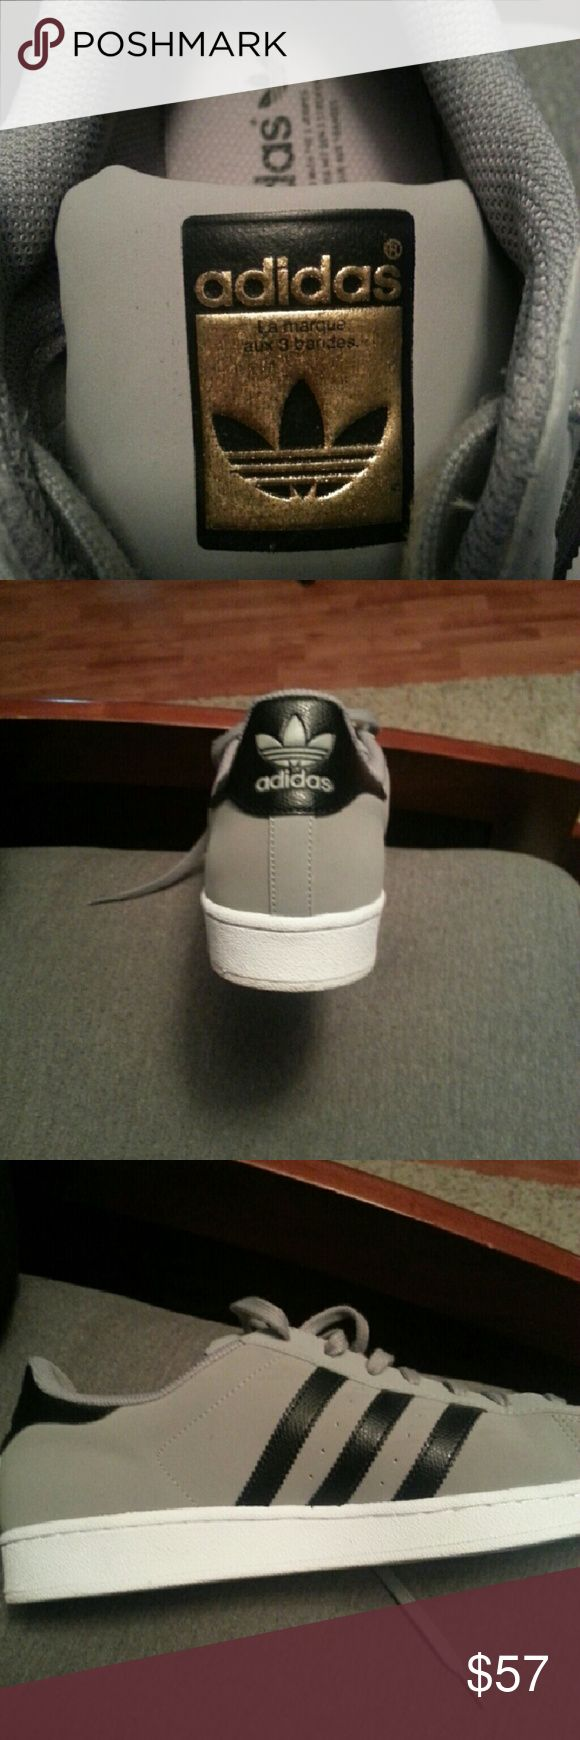 Limited Edition Stan Smith Adidas Shoes Men's size 13. Grey with black stripes and a gold adidas emblem on the tongue. Wore only 2 times. VERY NICE SHOES. MINT CONDITION!! Adidas Shoes Sneakers